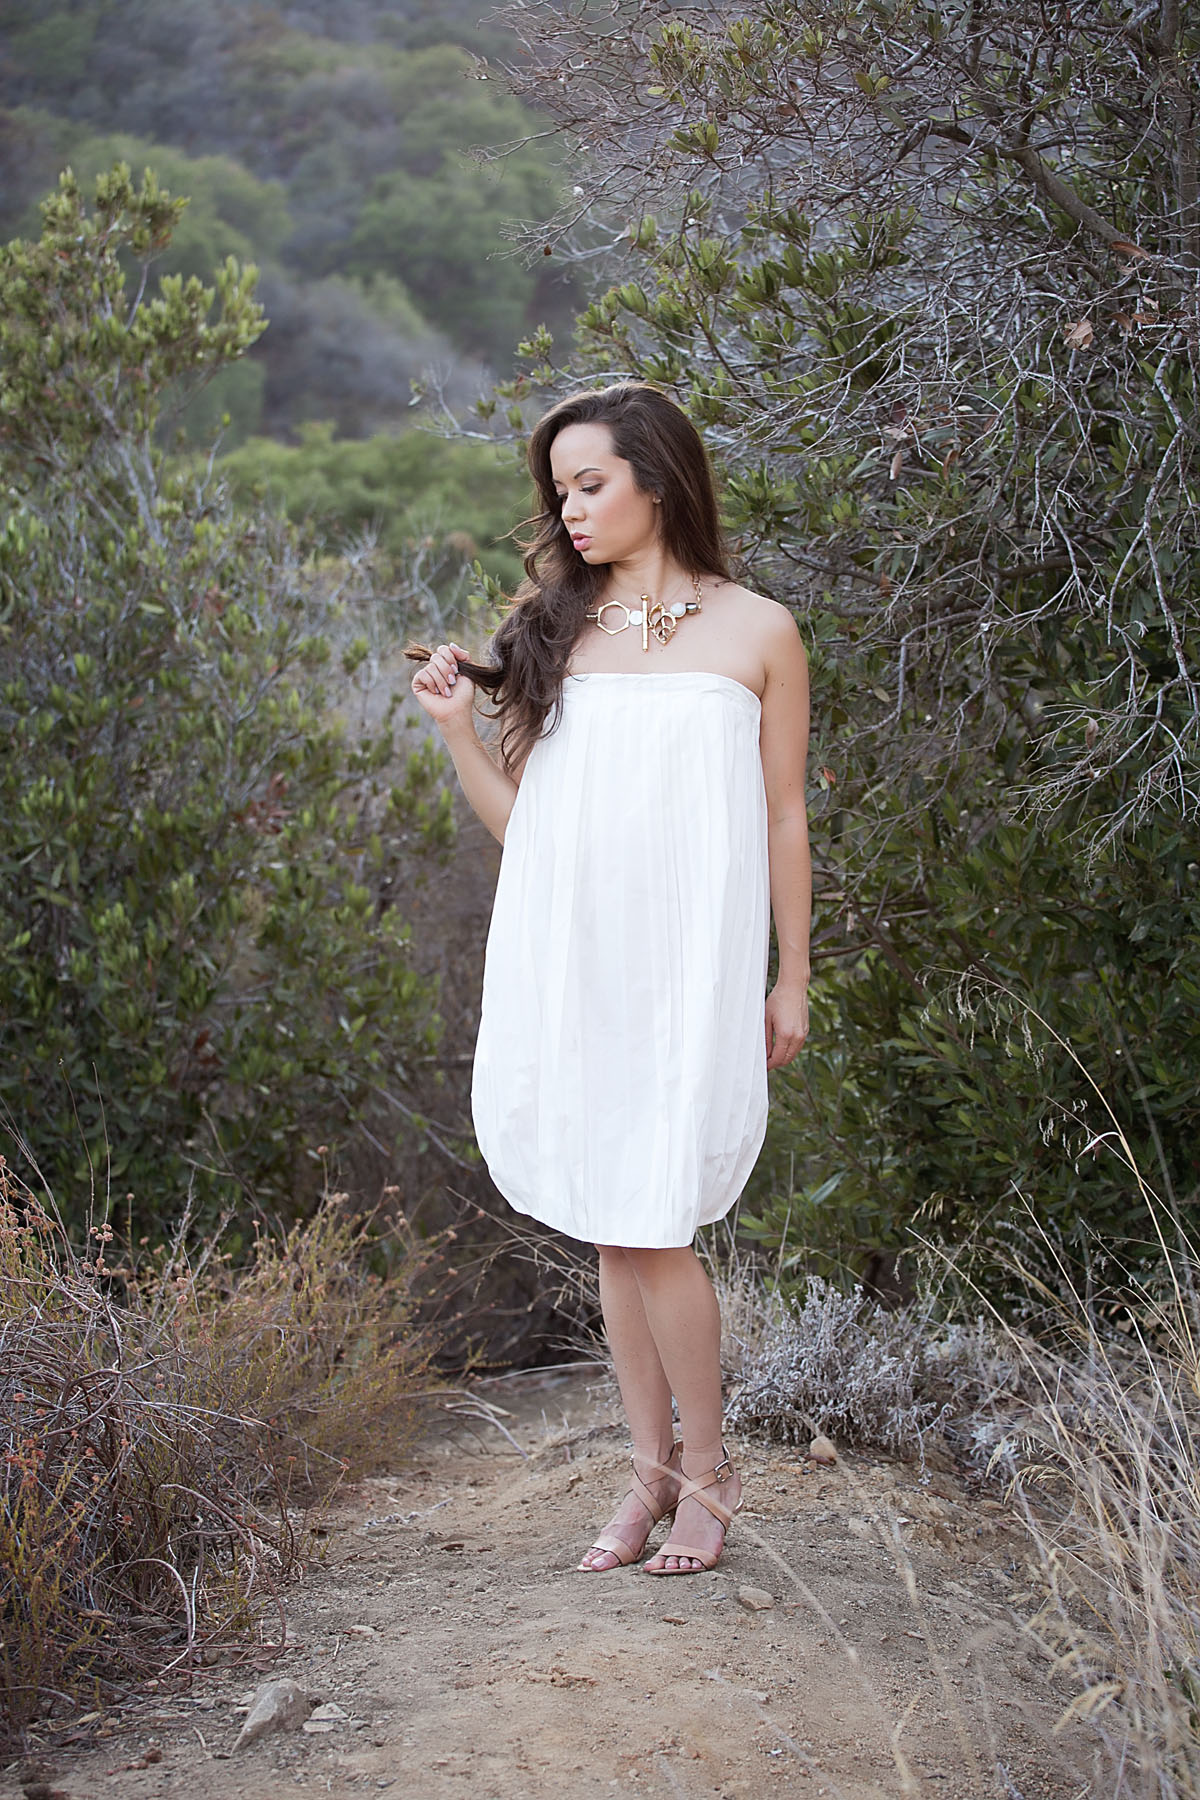 los angeles fashion, fashion blog, style blog, la style, la model, jil sander dress, michael kors heels, kelly wearstler necklace, mandeville canyon